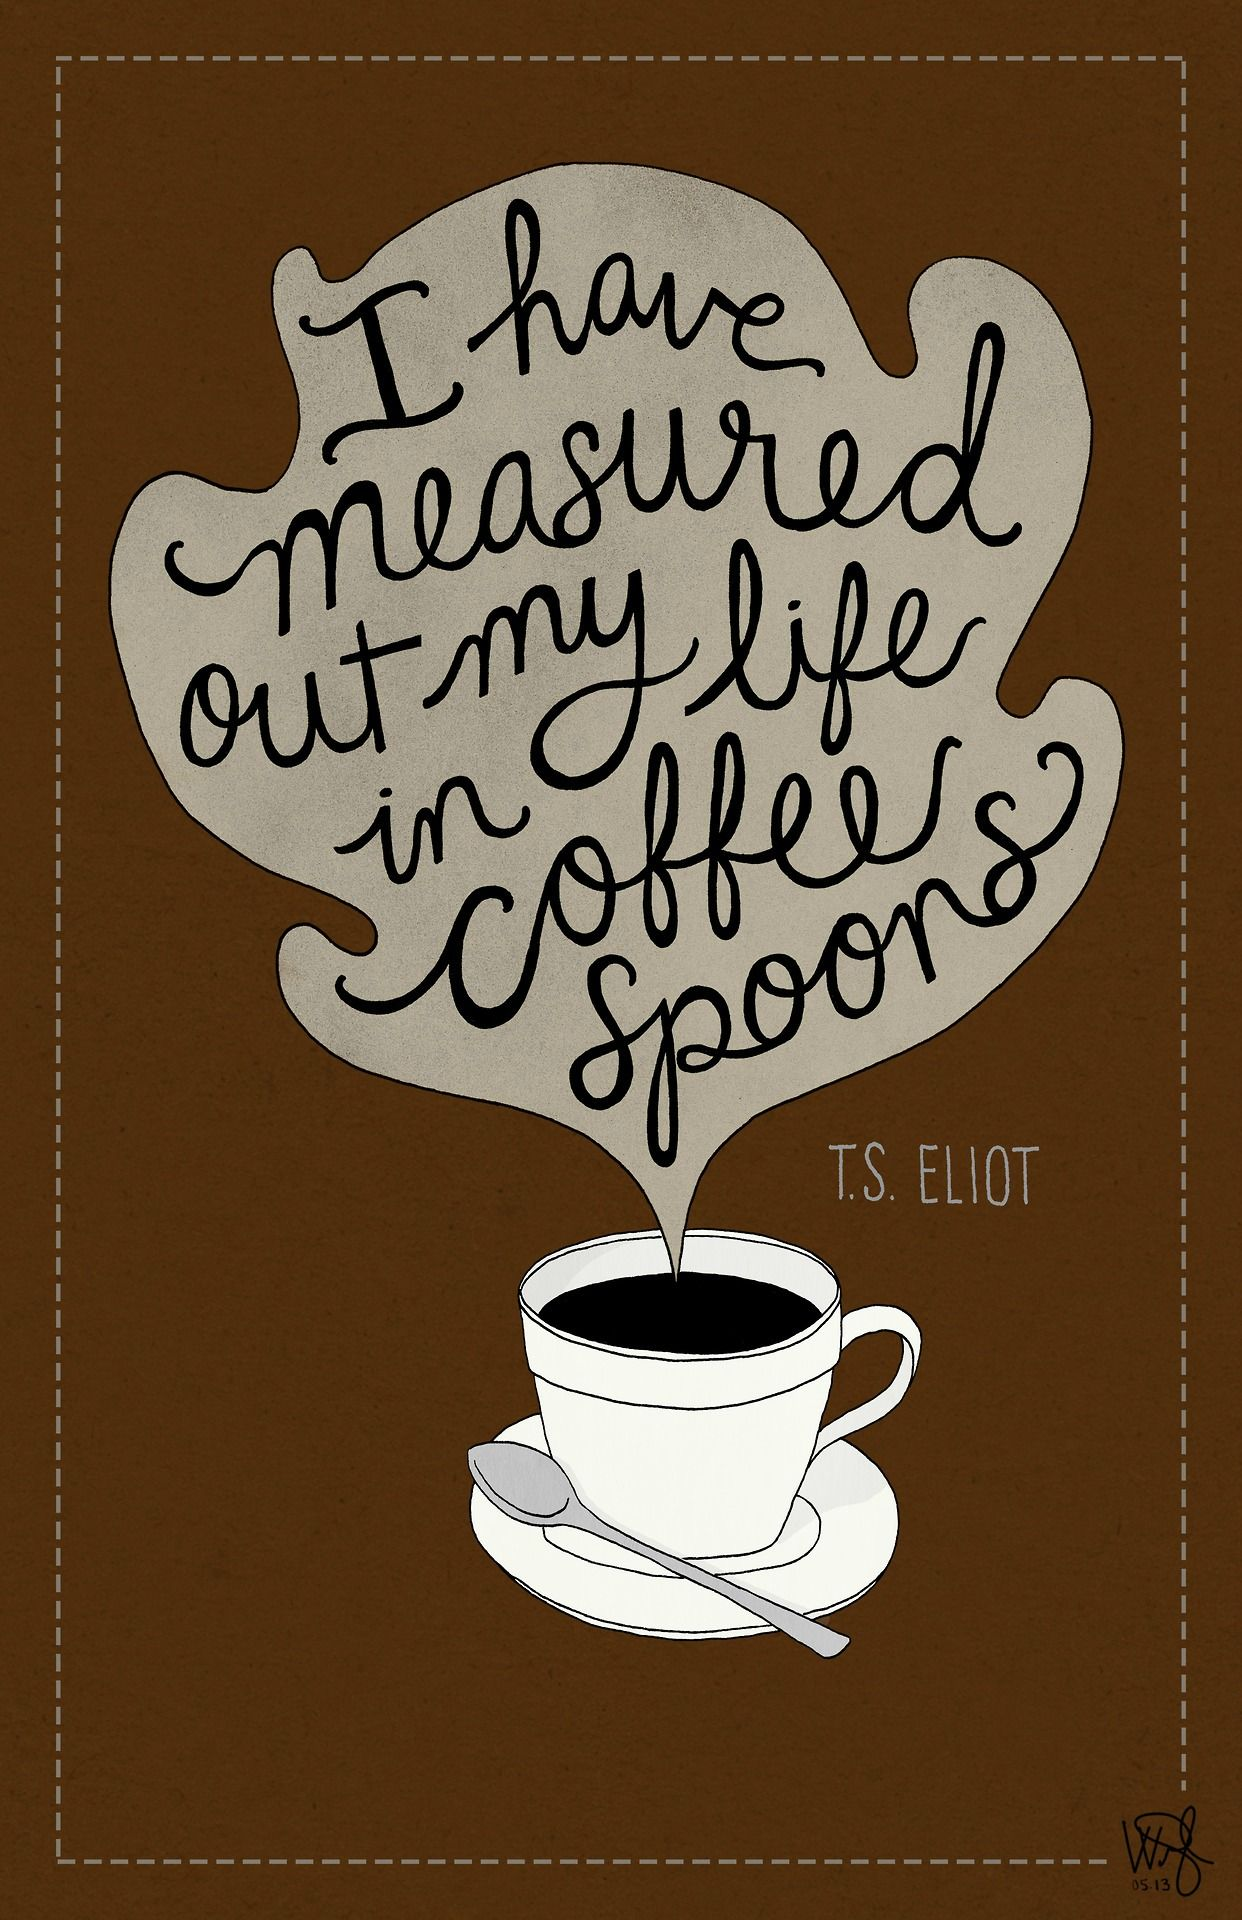 I Have Measured Out My Life In Coffee Spoons